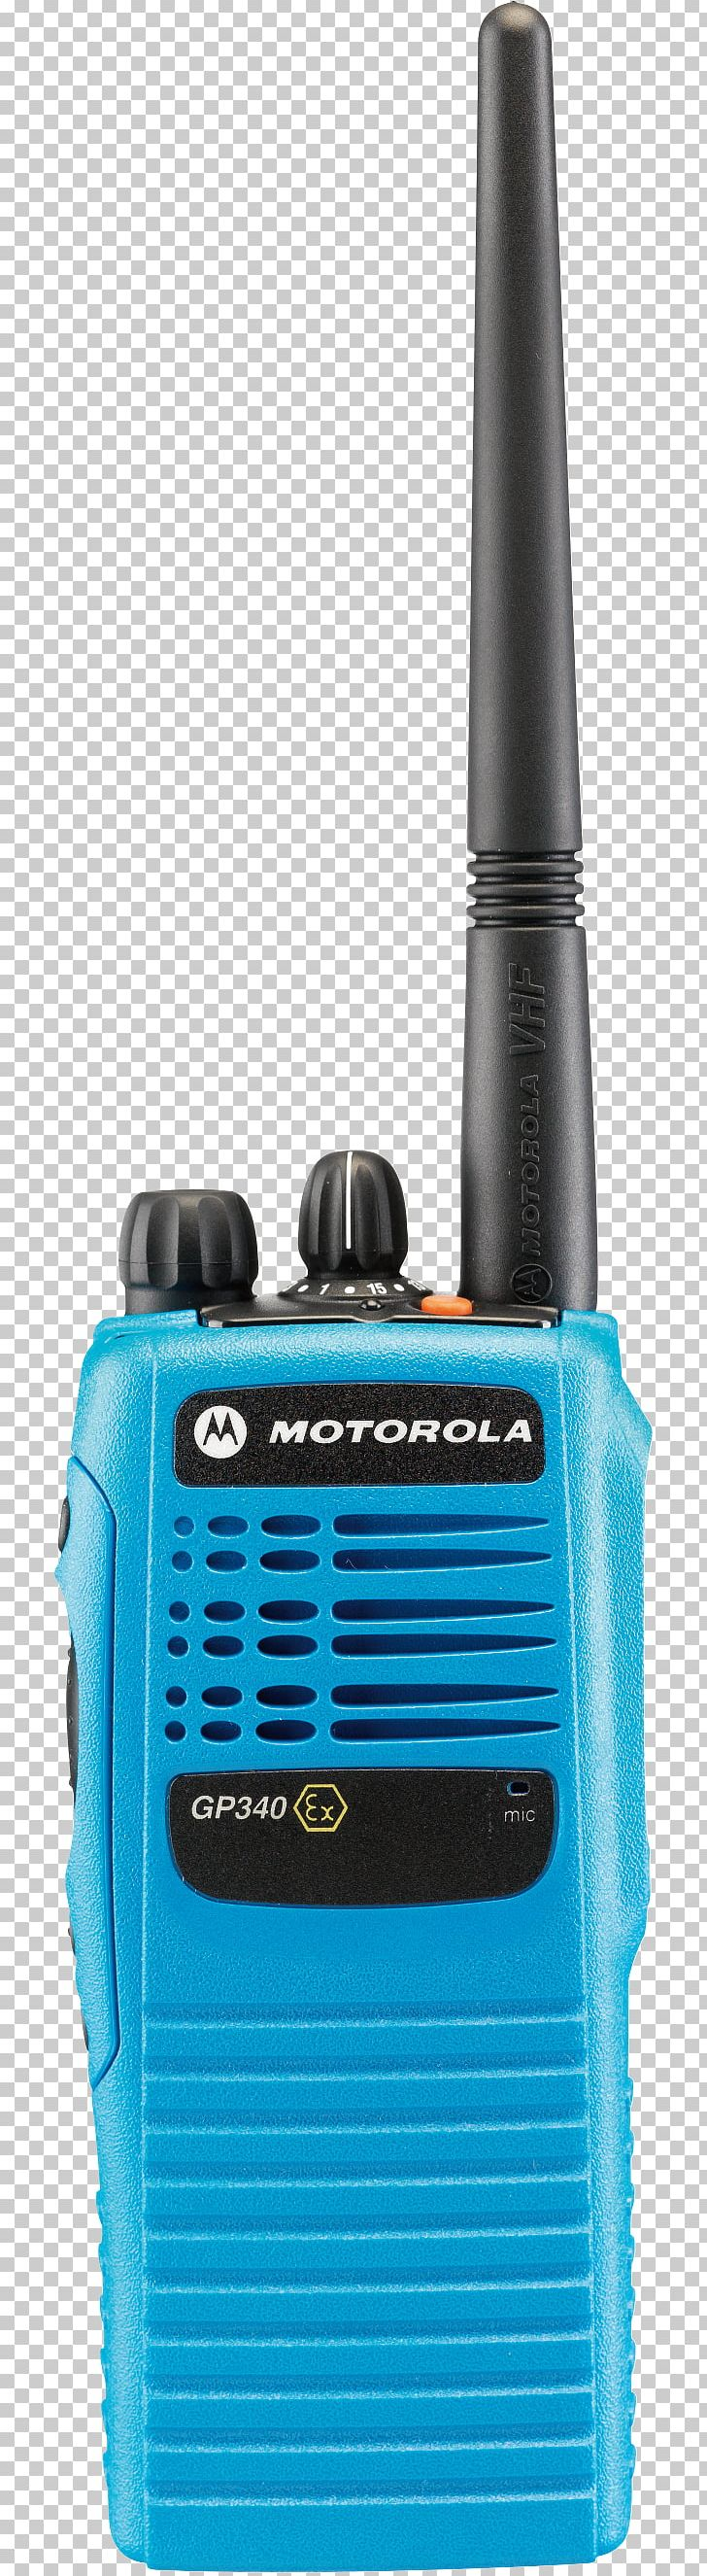 Two-way Radio Walkie-talkie Motorola ATEX Directive PNG, Clipart, Aerials, Cylinder, Electric Blue, Electronic Device, Electronics Free PNG Download